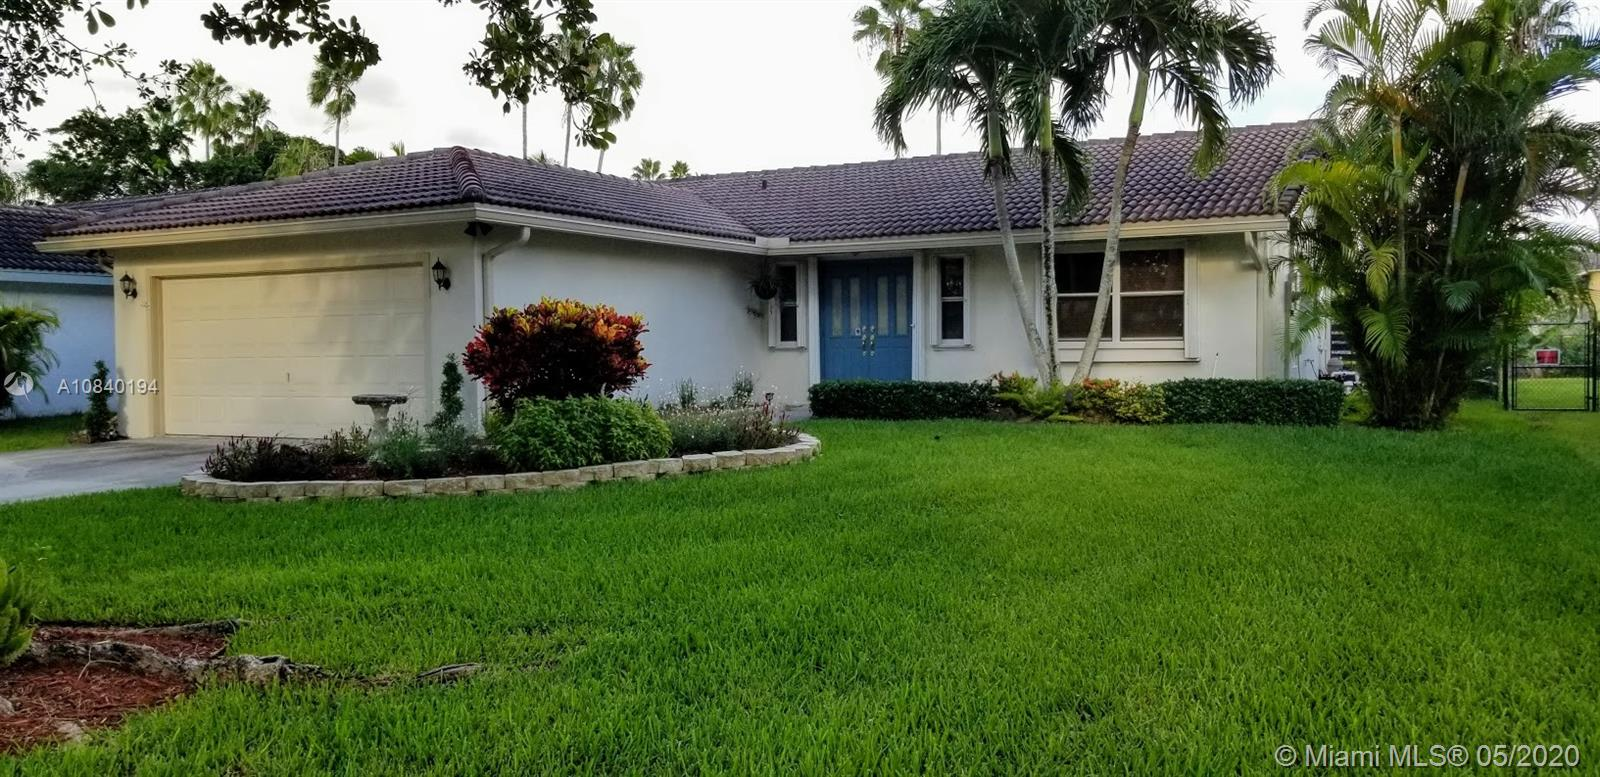 4035 NW 115th Ave, Coral Springs, FL 33065